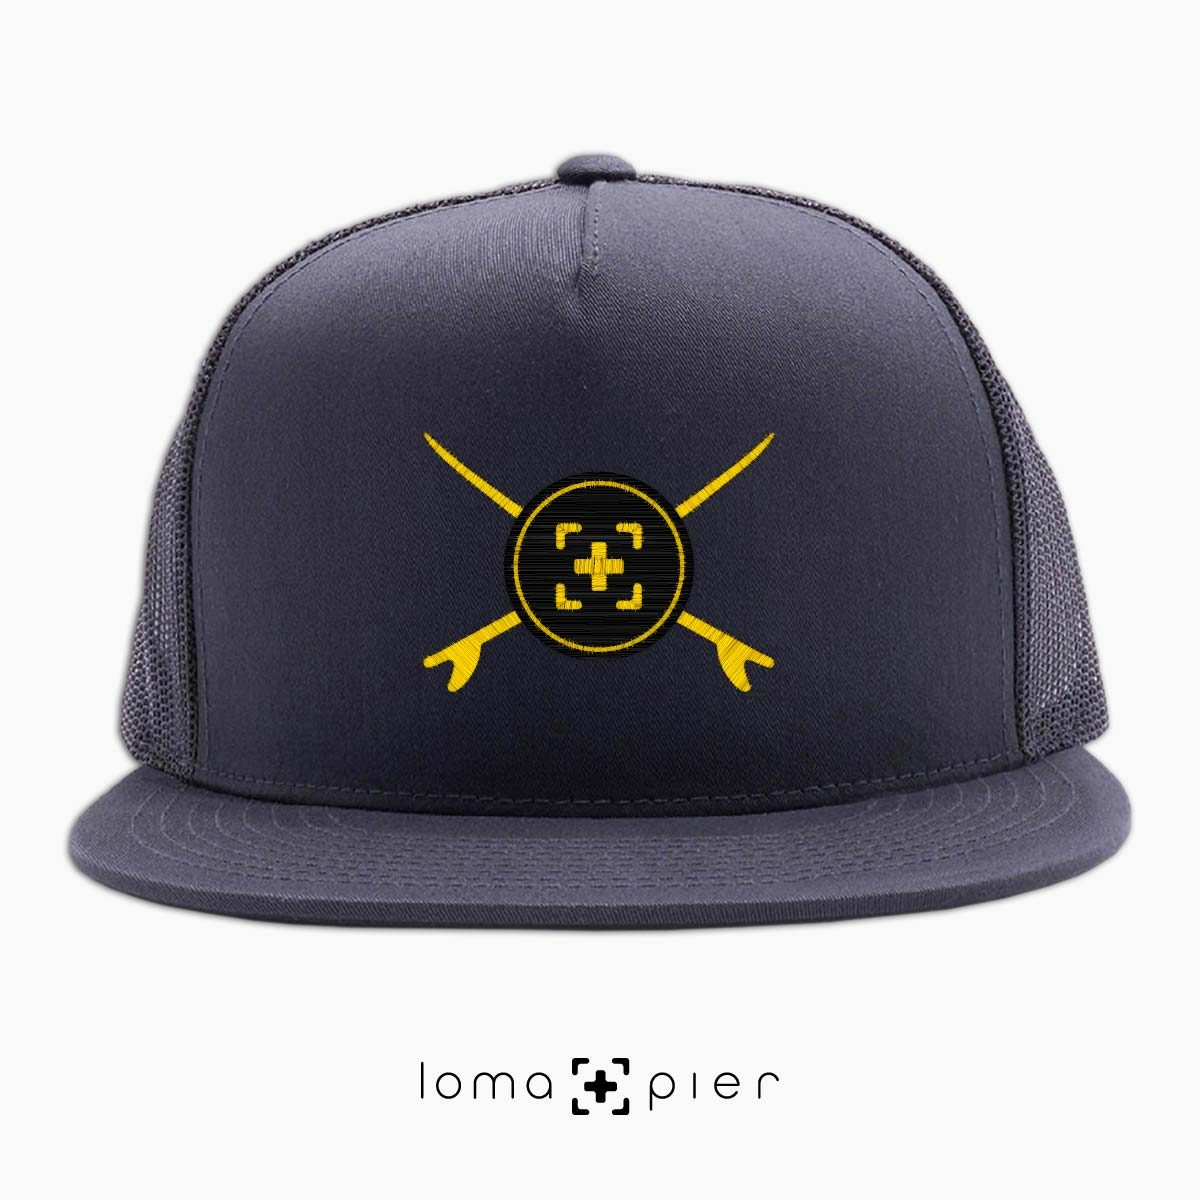 SURFERS BADGE hermosa beach netback trucker hat in charcoal by lomapier hat store